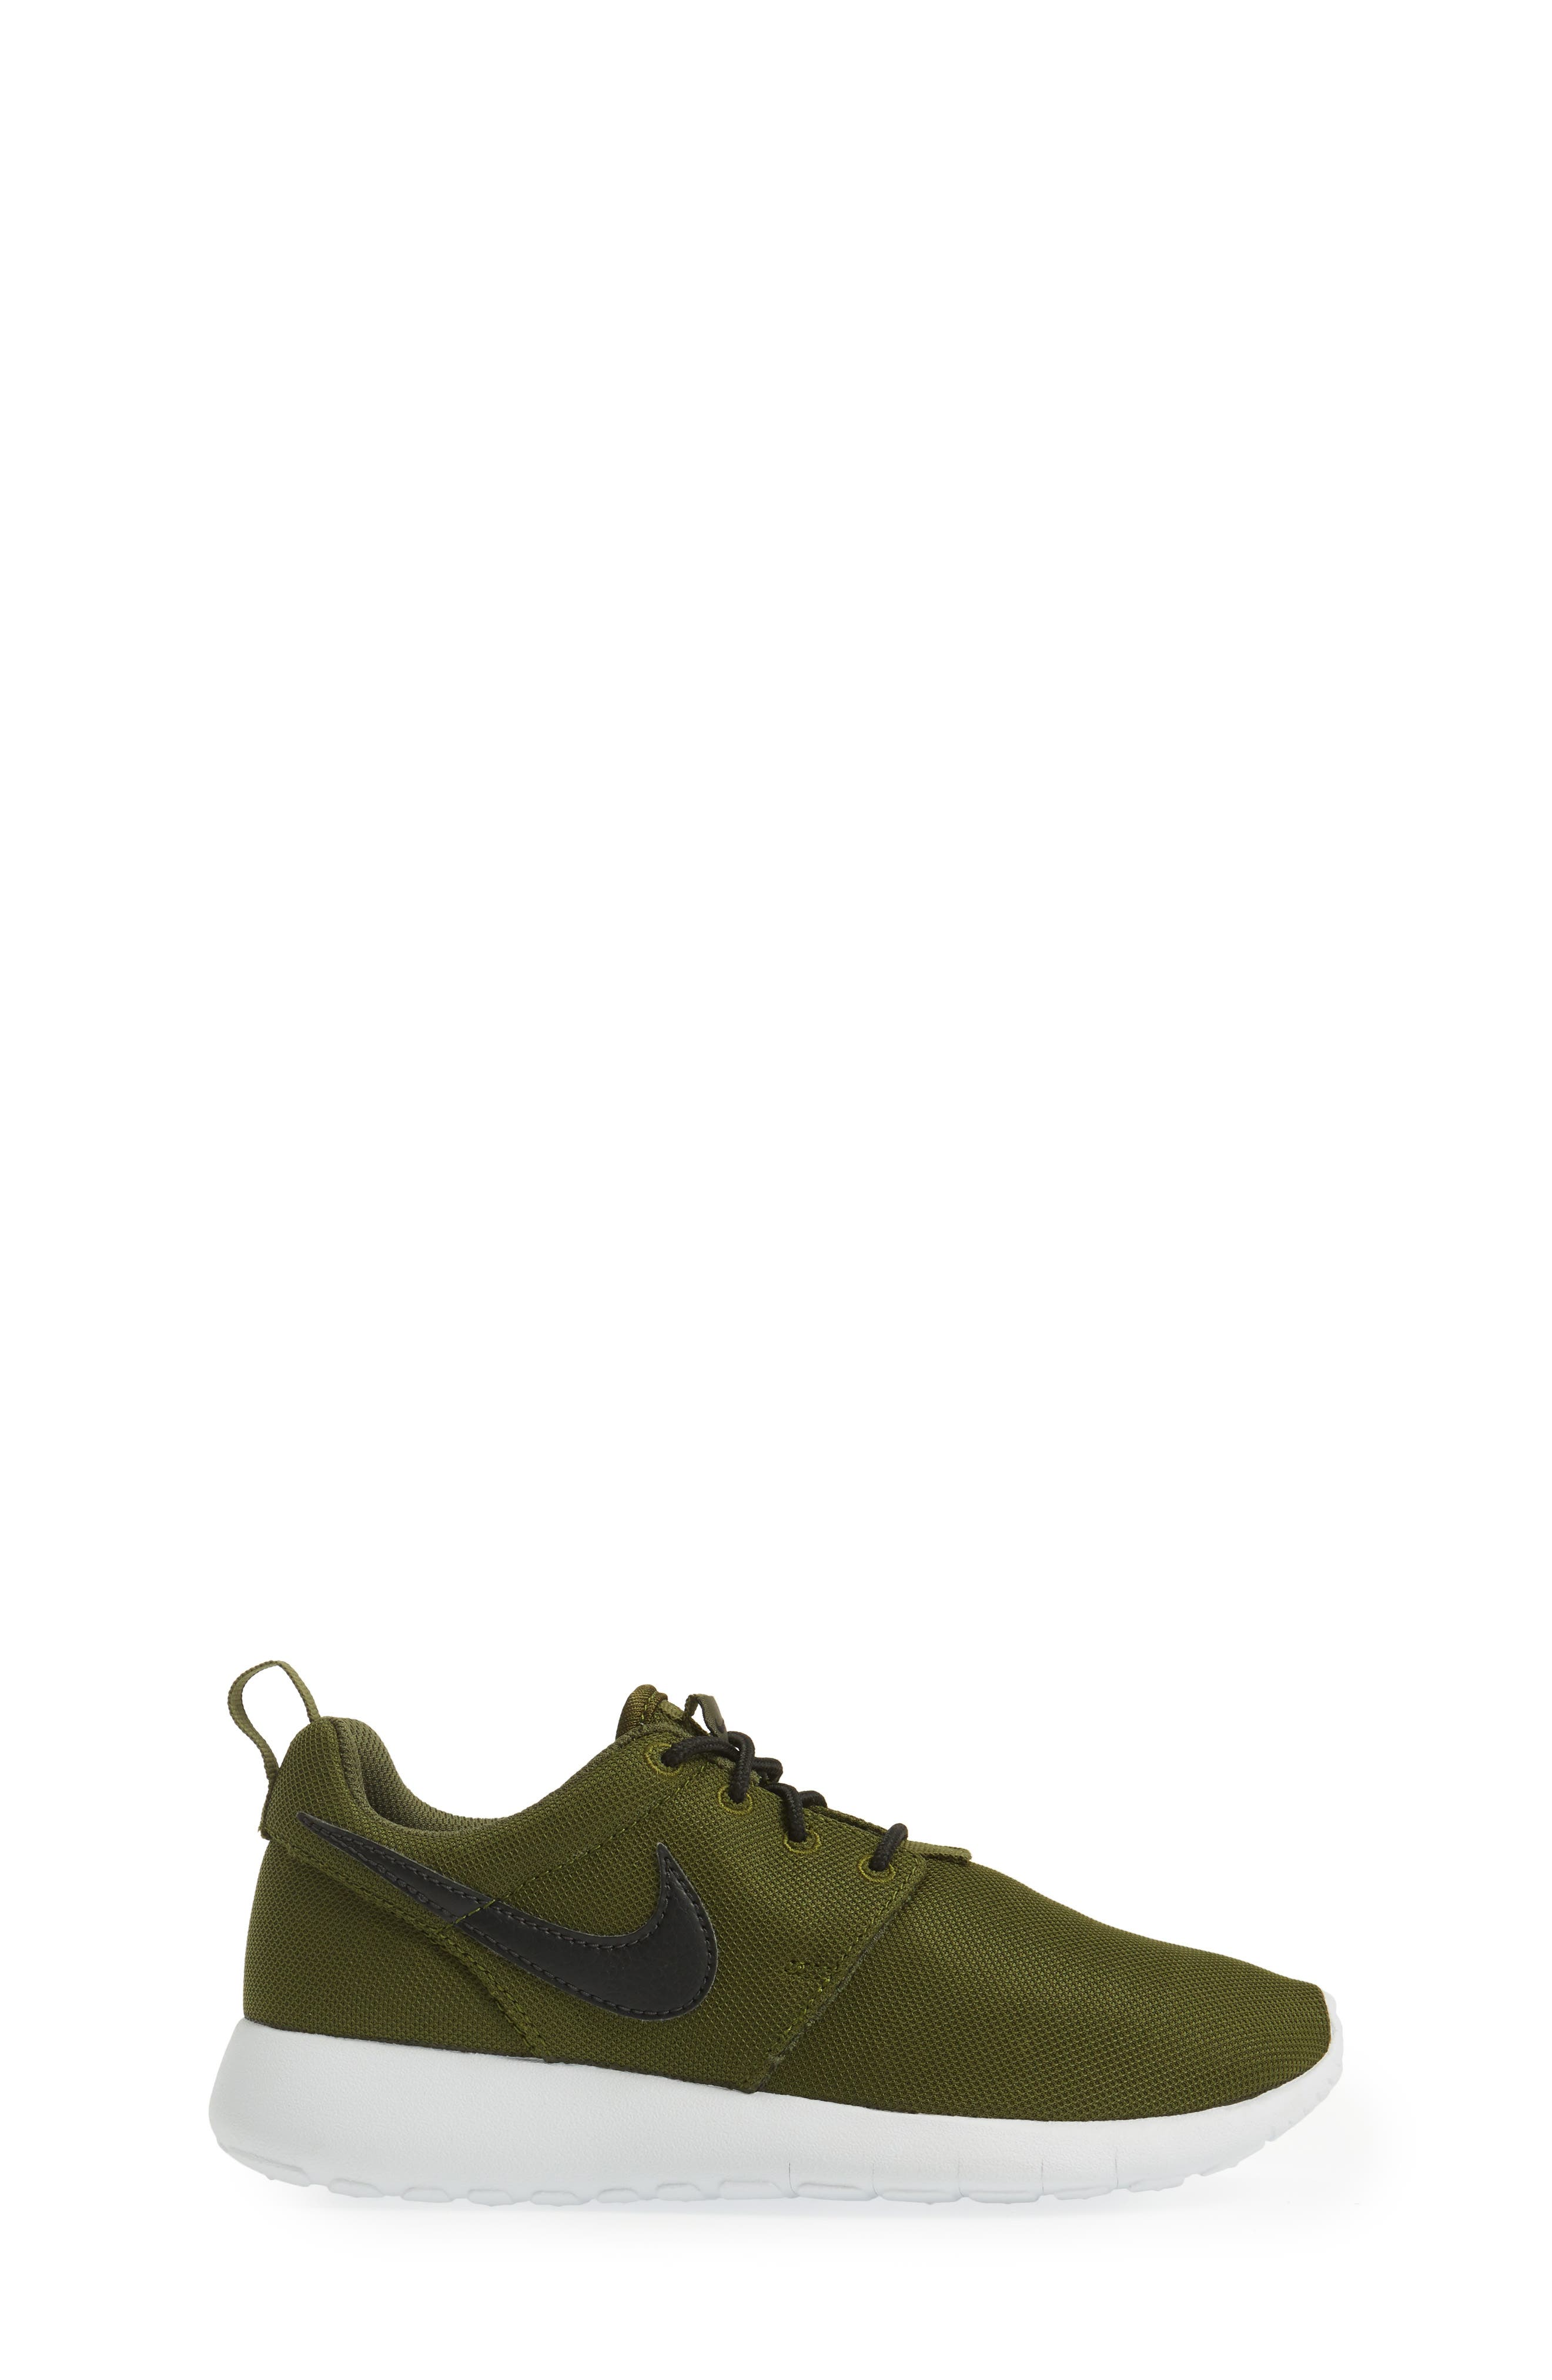 'Roshe Run' Sneaker,                             Alternate thumbnail 128, color,